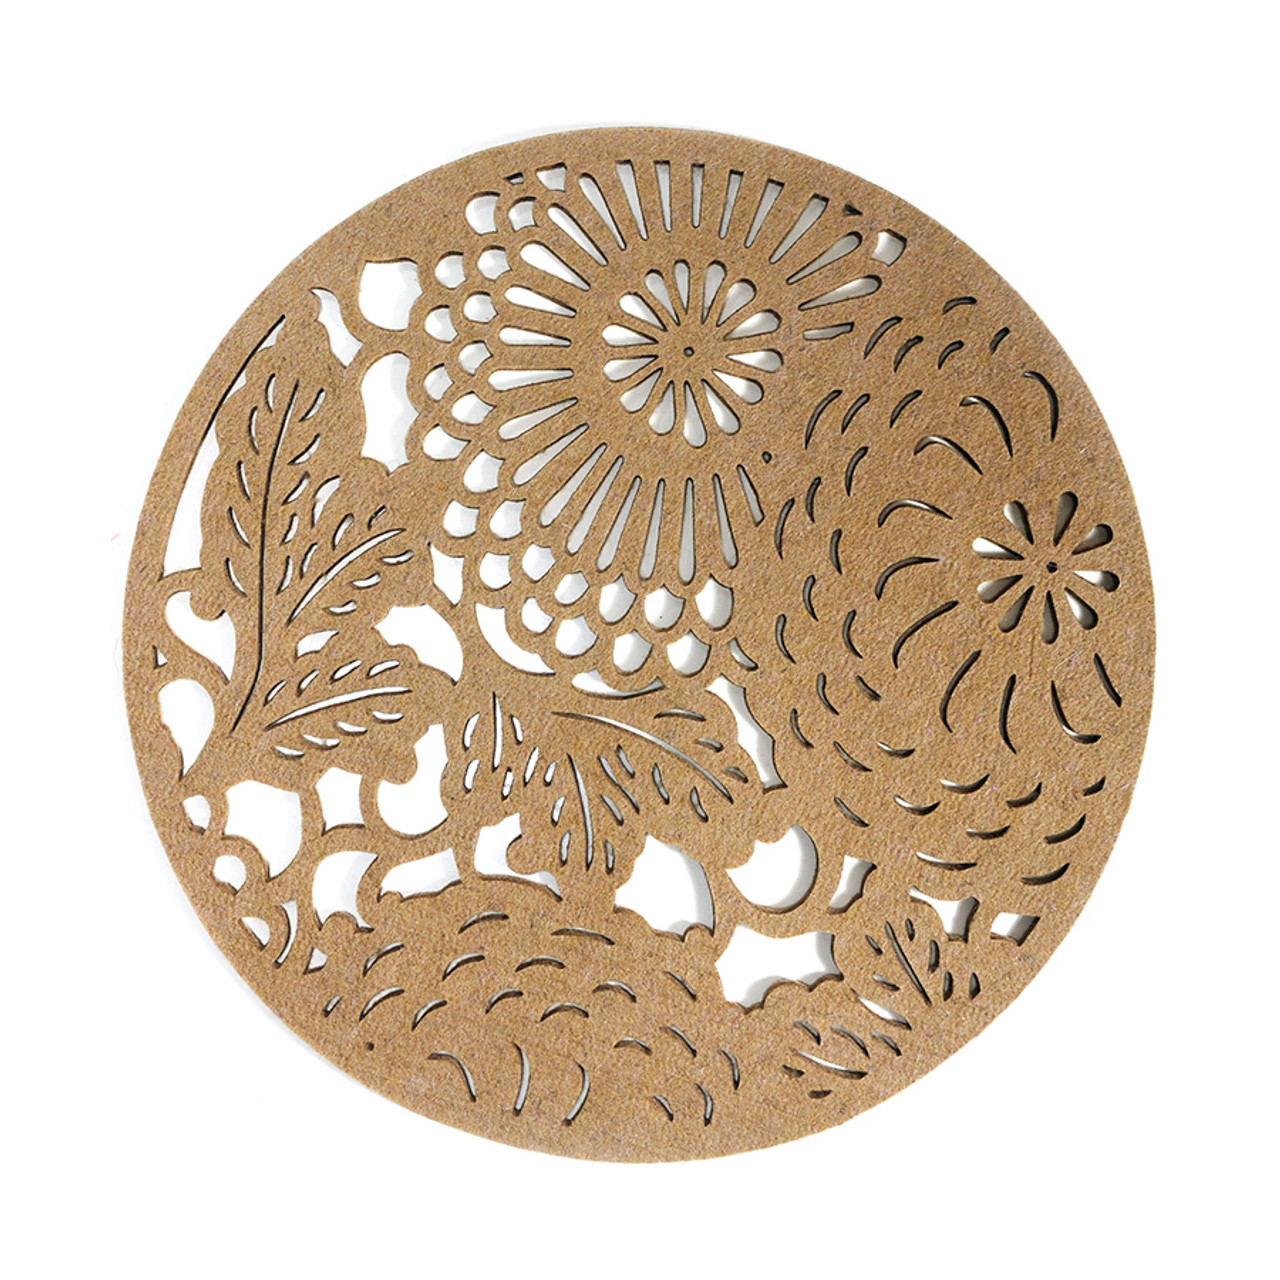 Floral Placemat - Round Taupe 4 piece set